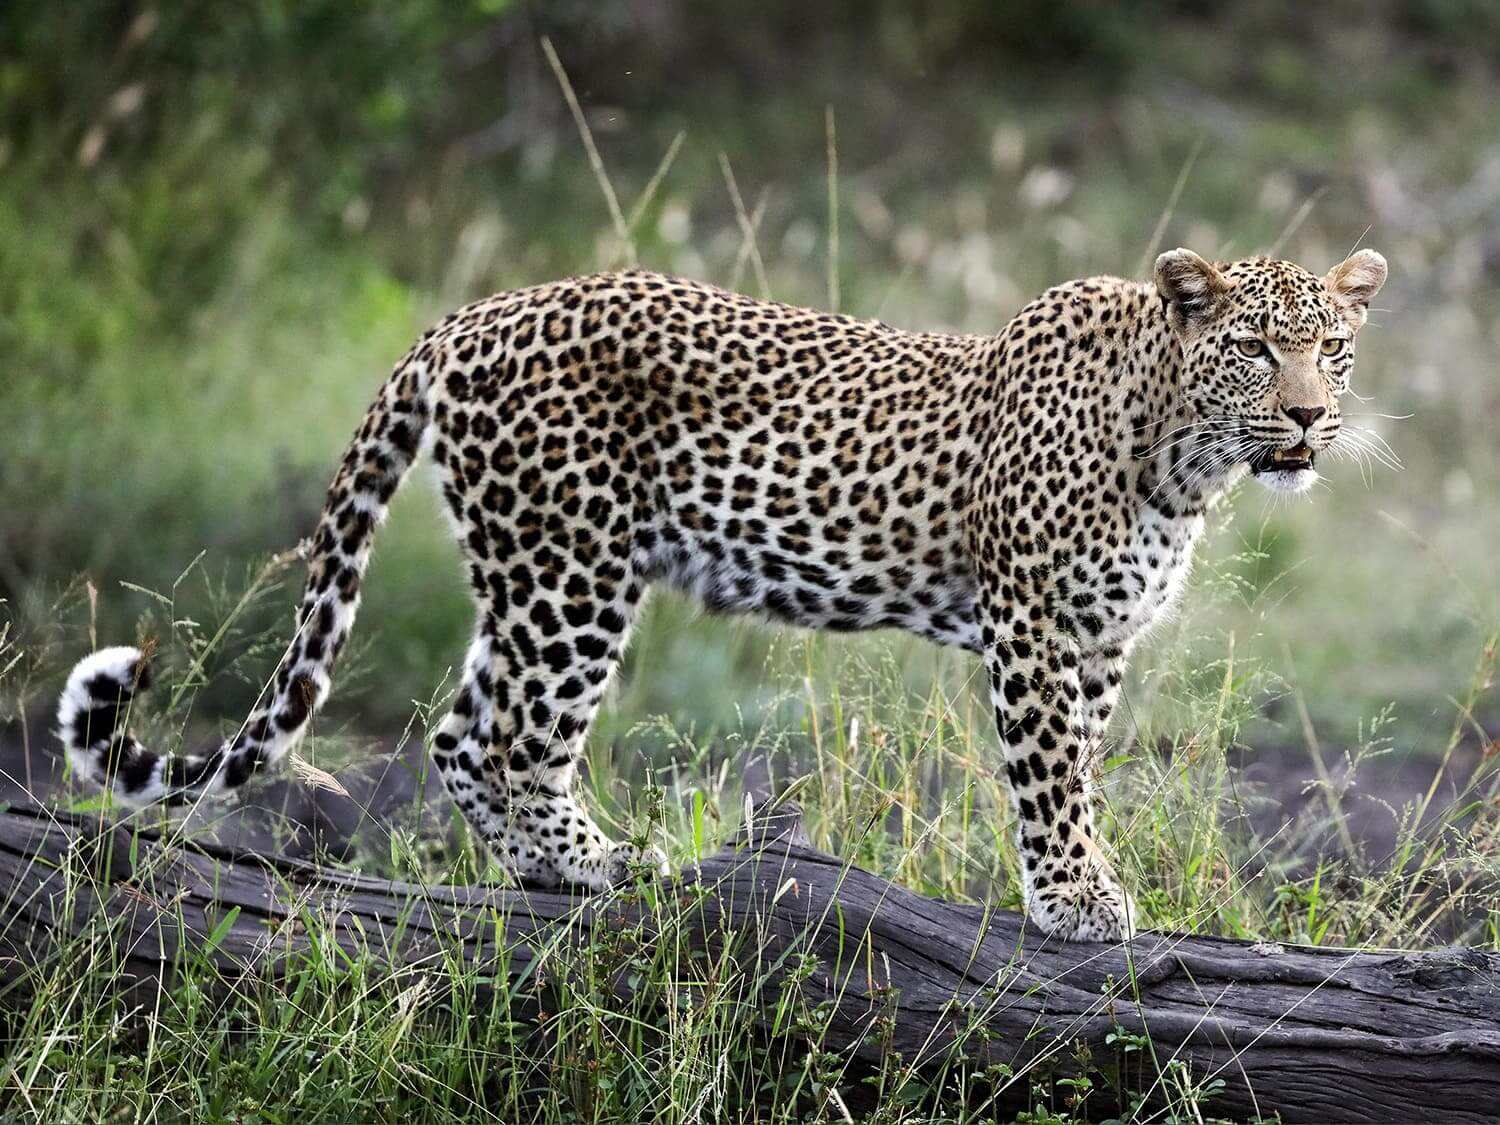 Magnificent leopard standing on a dead tree trunk at Londolozi Private Game Reserve, South Africa.